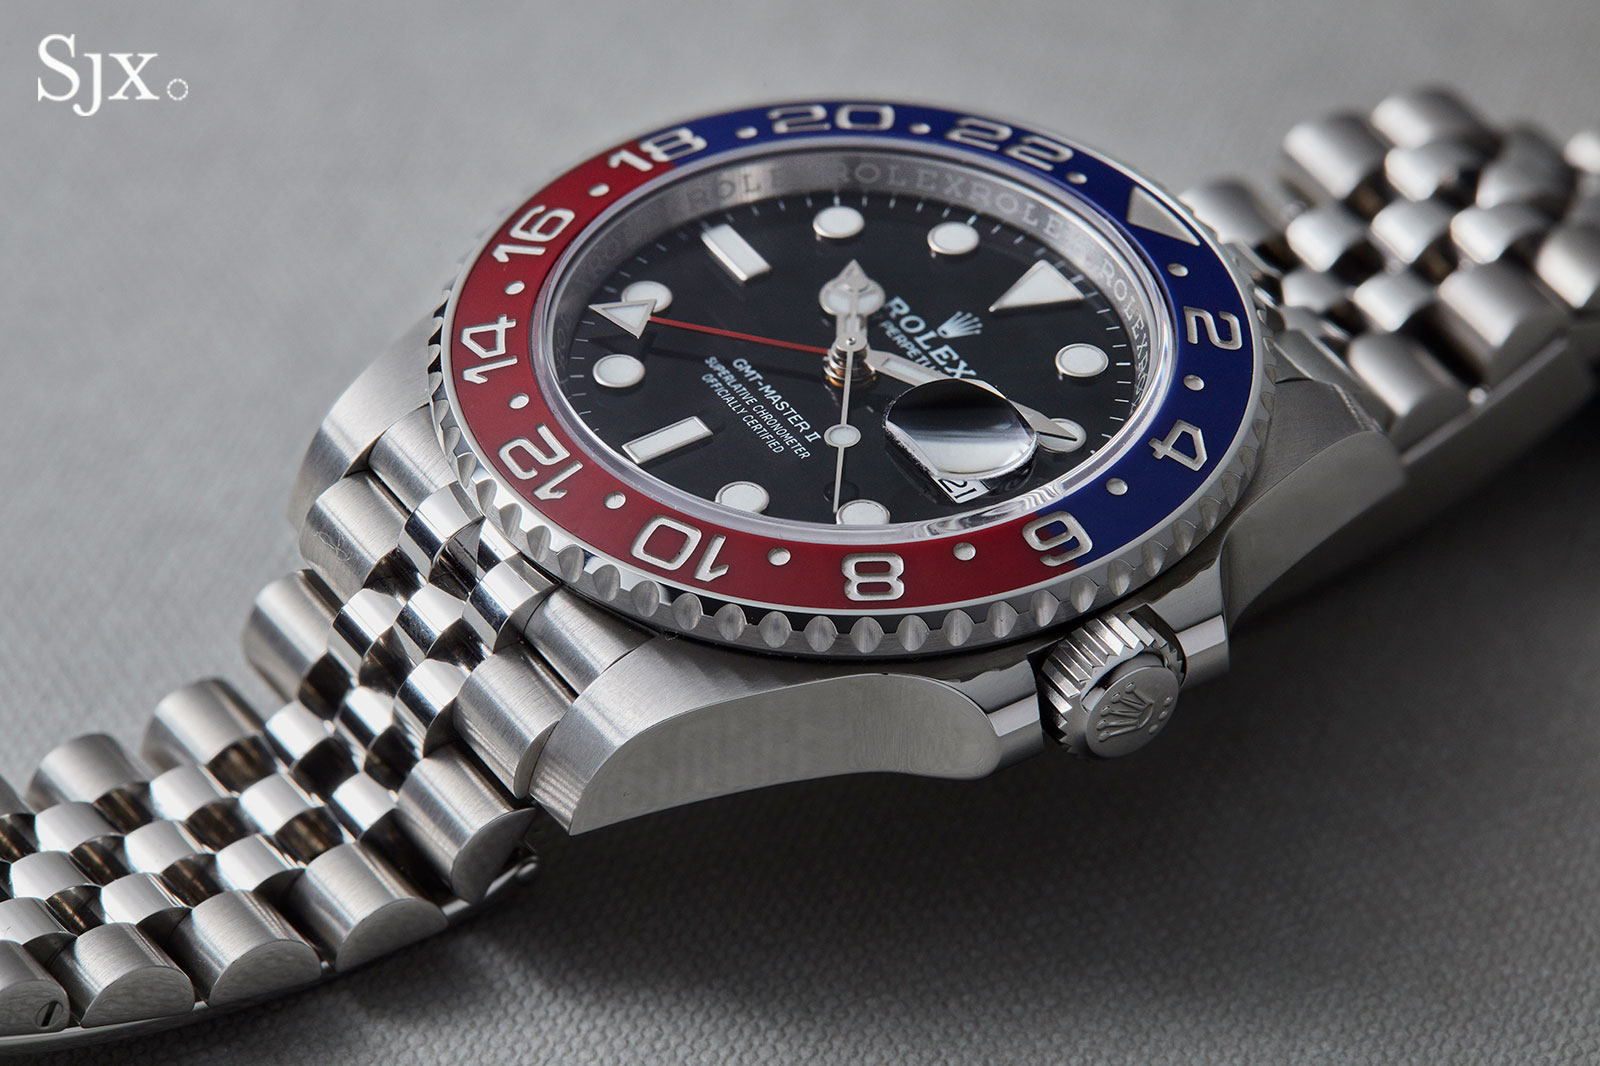 Up Close with the Rolex GMT,Master II \u201cPepsi\u201d on Jubilee